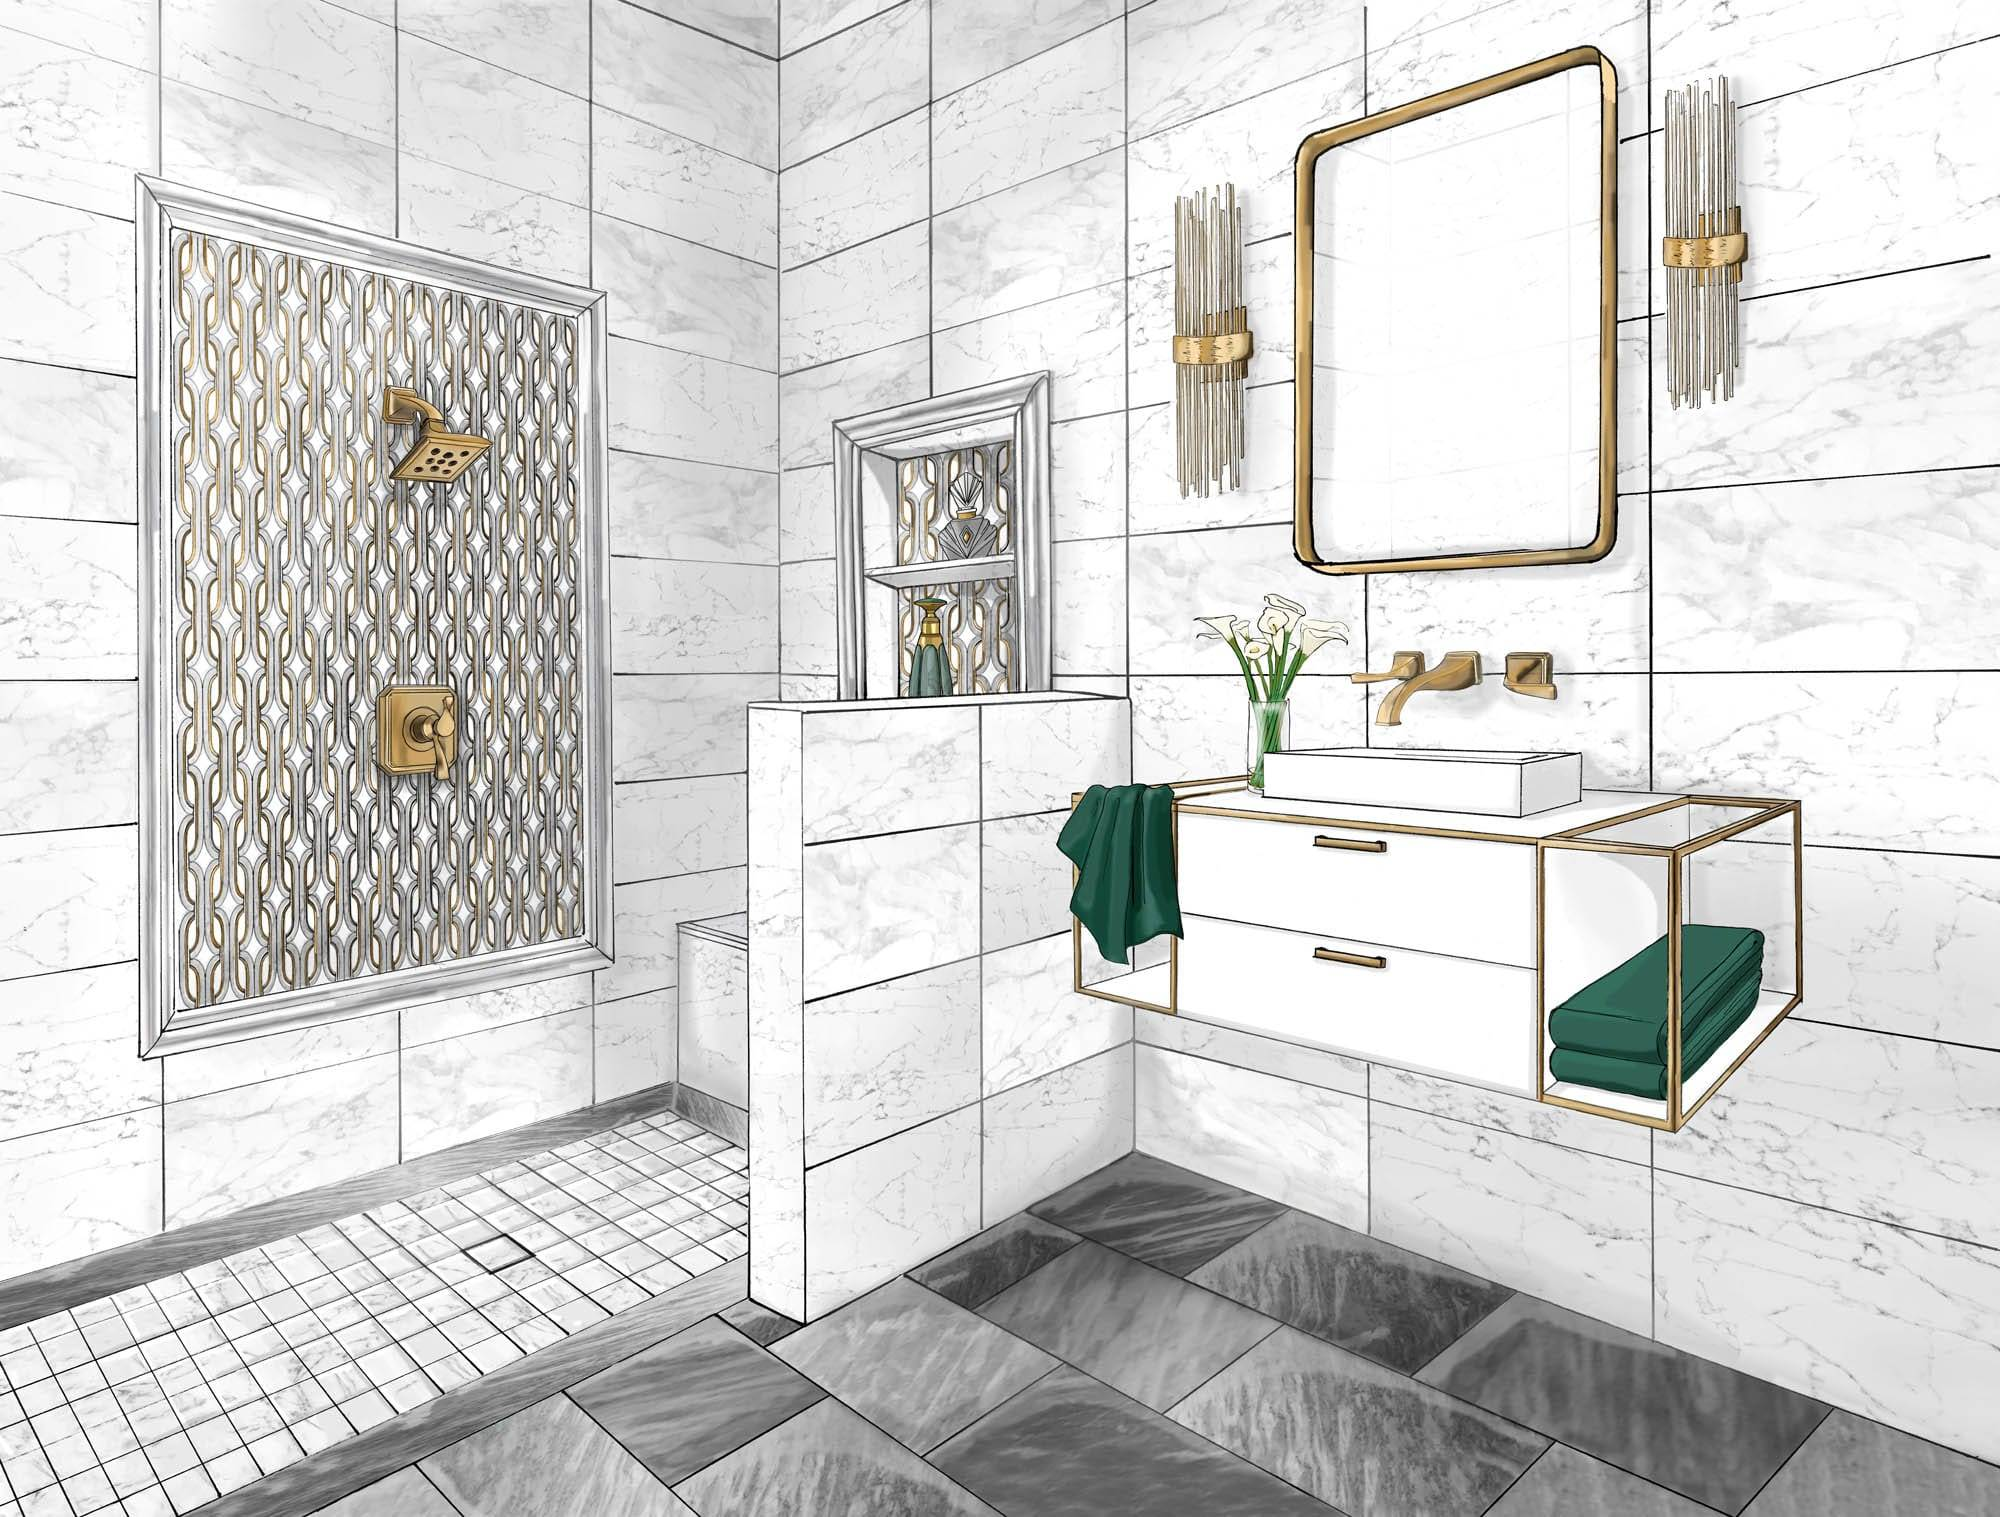 Sketch of Gilded Glamour bathroom.